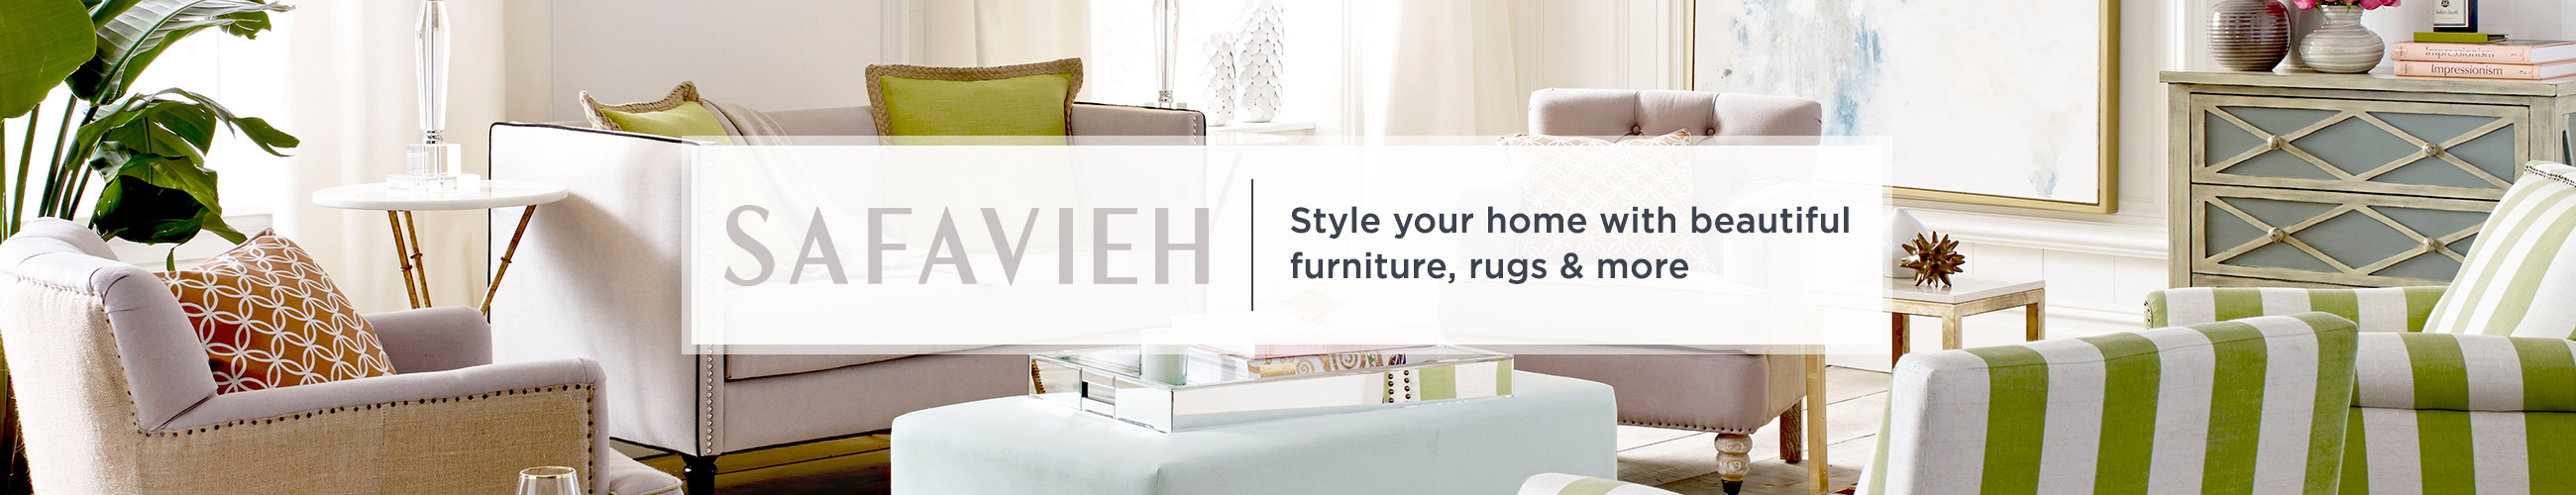 Safavieh. Style your home with beautiful furniture, rugs & more